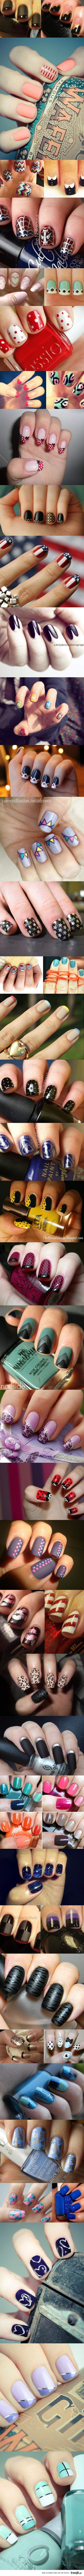 Really cute nail ideas..if only i were this talented at doing nails